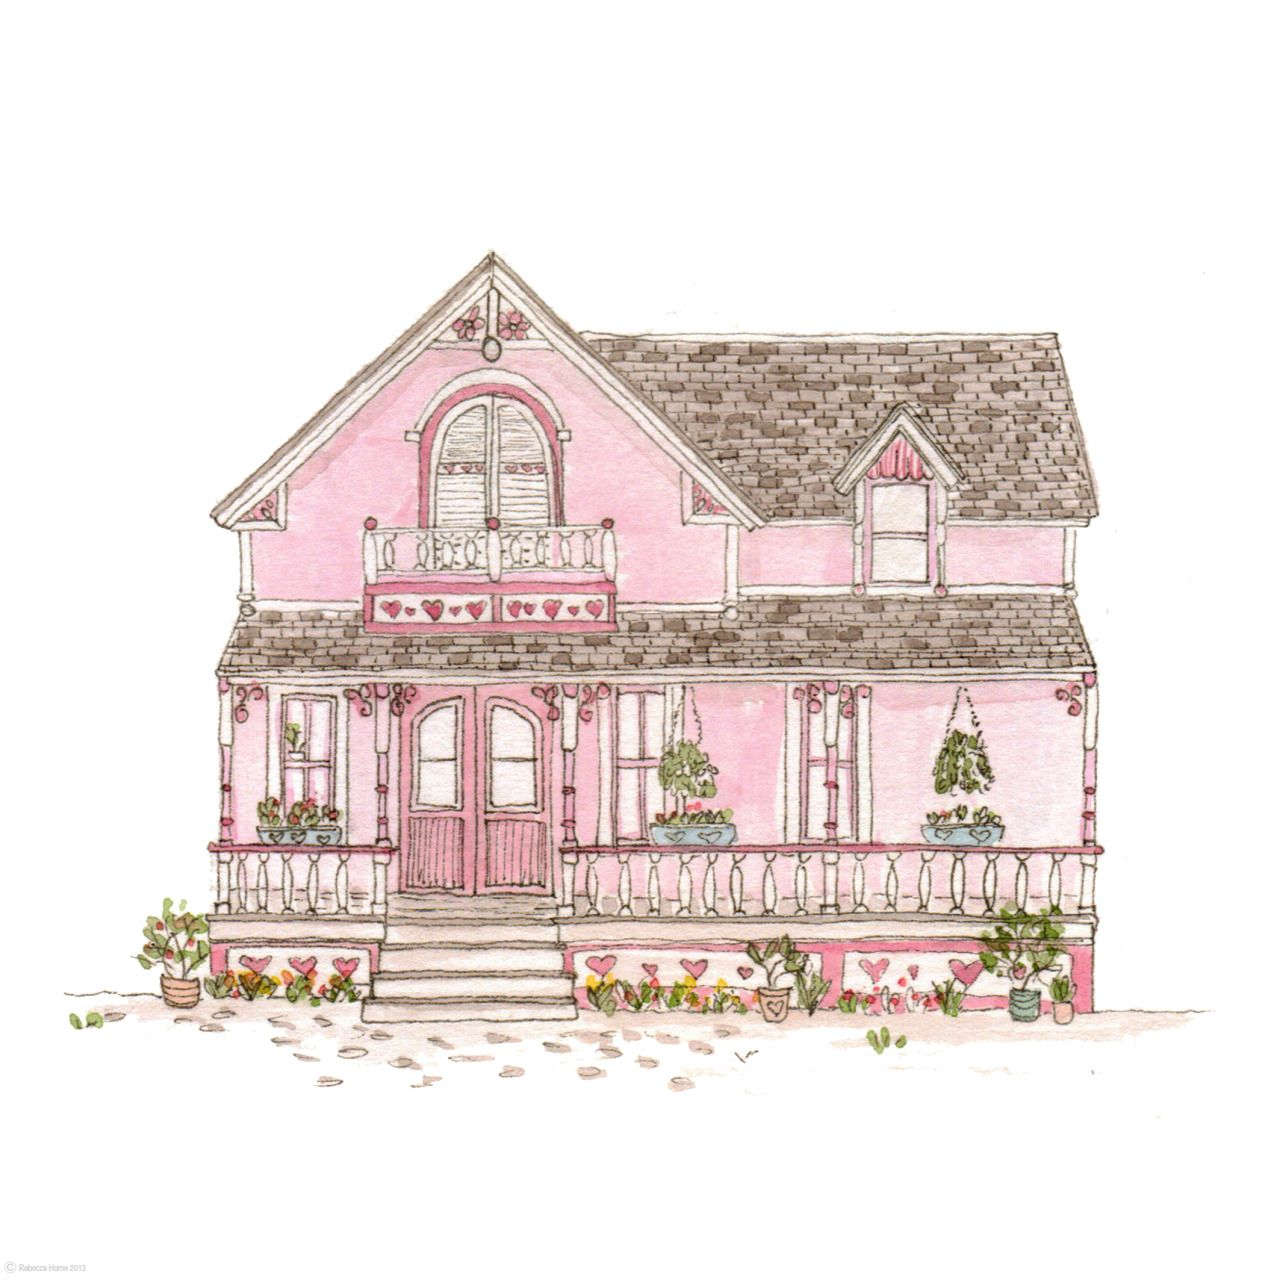 Home Design Ideas Buch: House Illustration, House Drawing